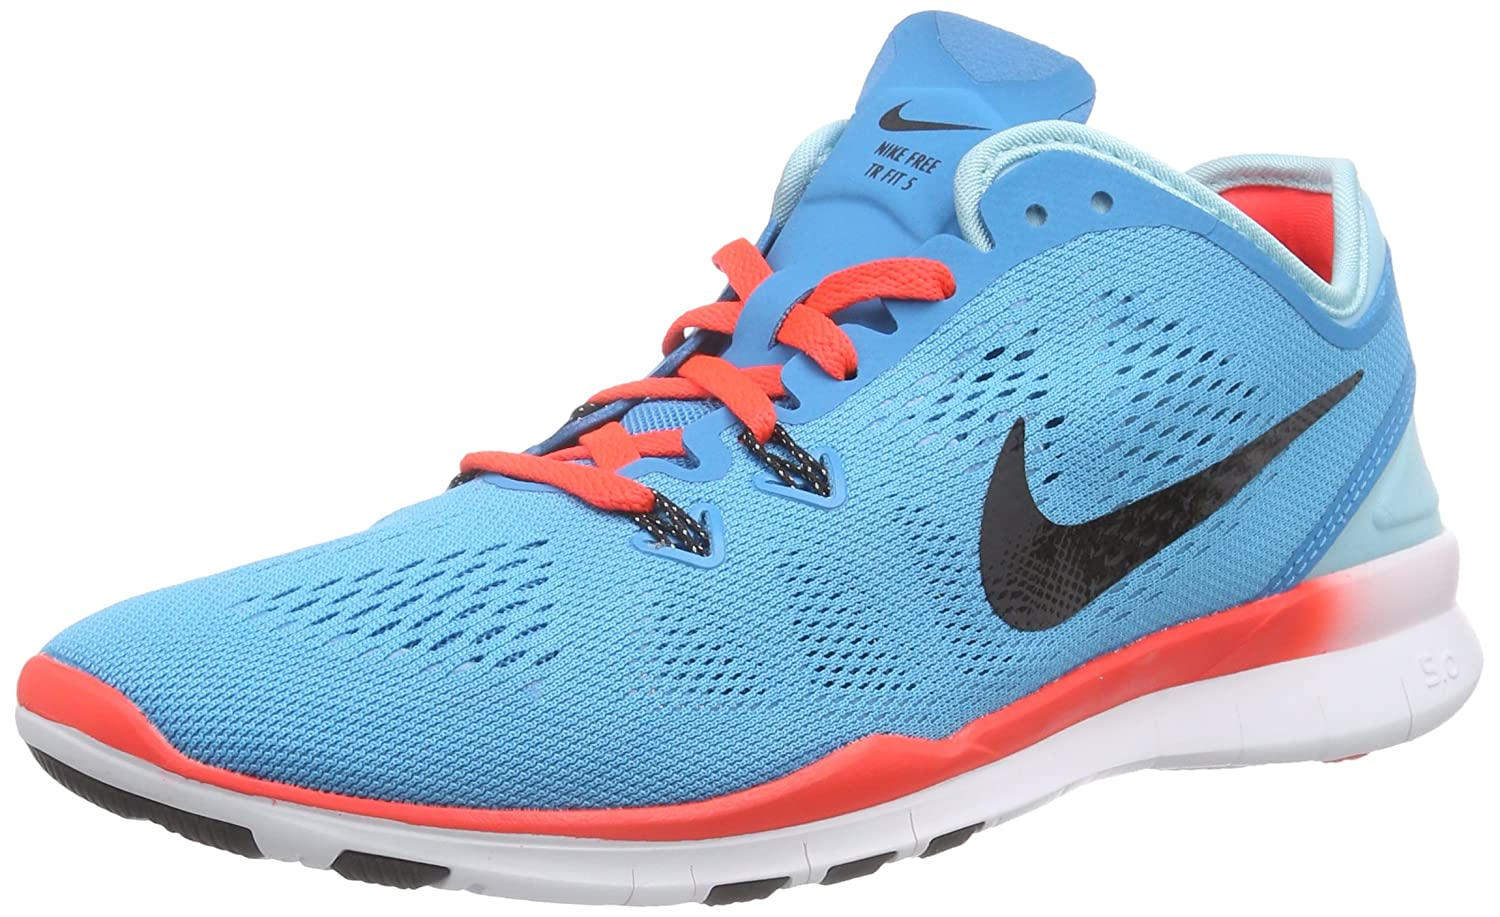 sale retailer d8611 d98ad Nike Women s Free Tr 5.0 Fit 5 Multisport Indoor Shoes  Amazon.co.uk  Shoes    Bags